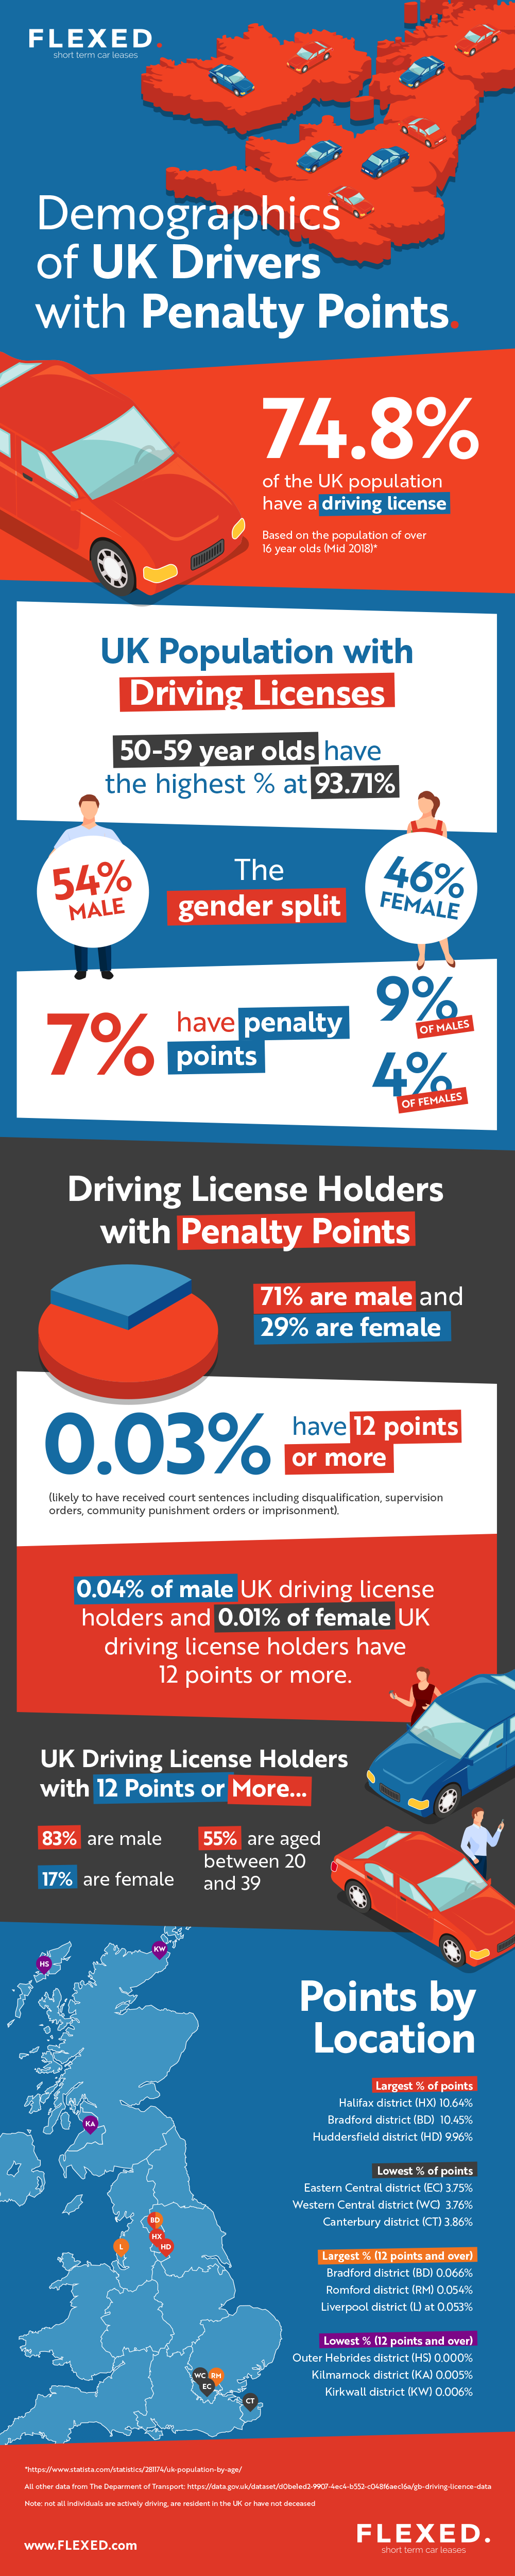 Demographics of UK Drivers With Penalty Points by Flexed